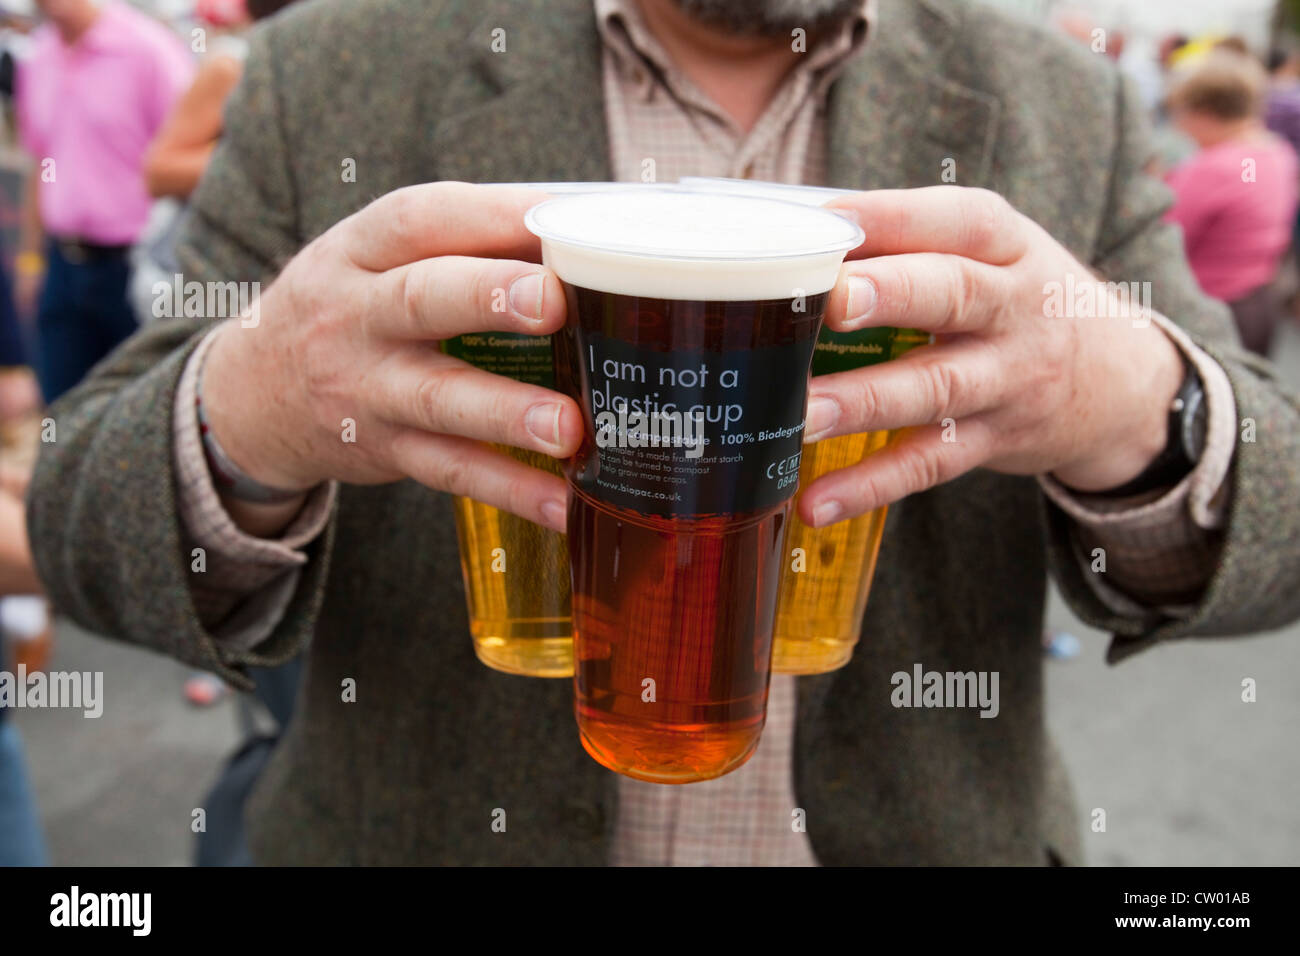 Man carrying pints of beer at Abergavenny Food festival, Monmouthshire, Wales, UK - Stock Image